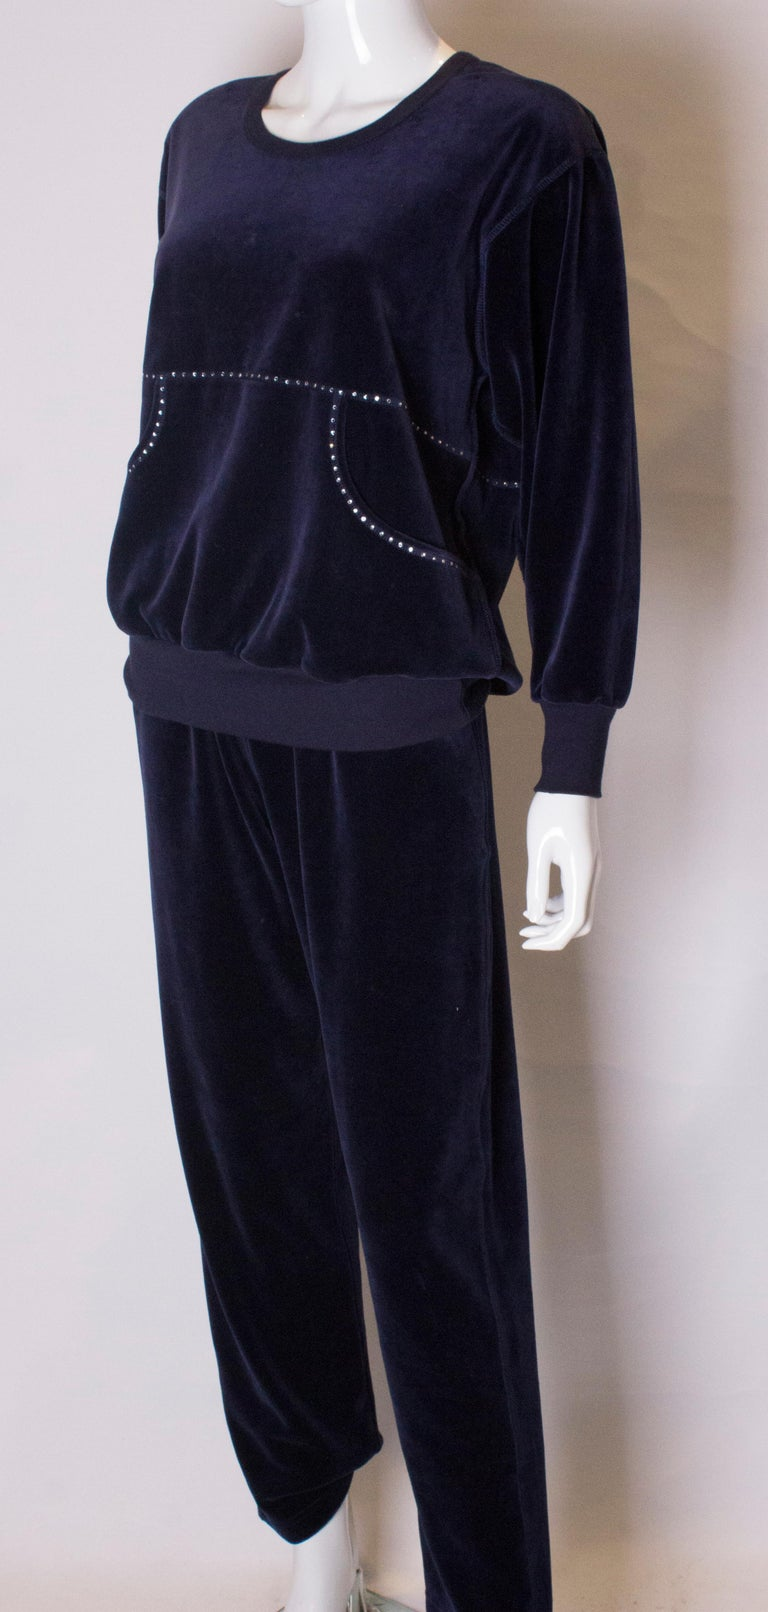 Vintage Sonia Rykiel Leisure Suit In Good Condition For Sale In London, GB